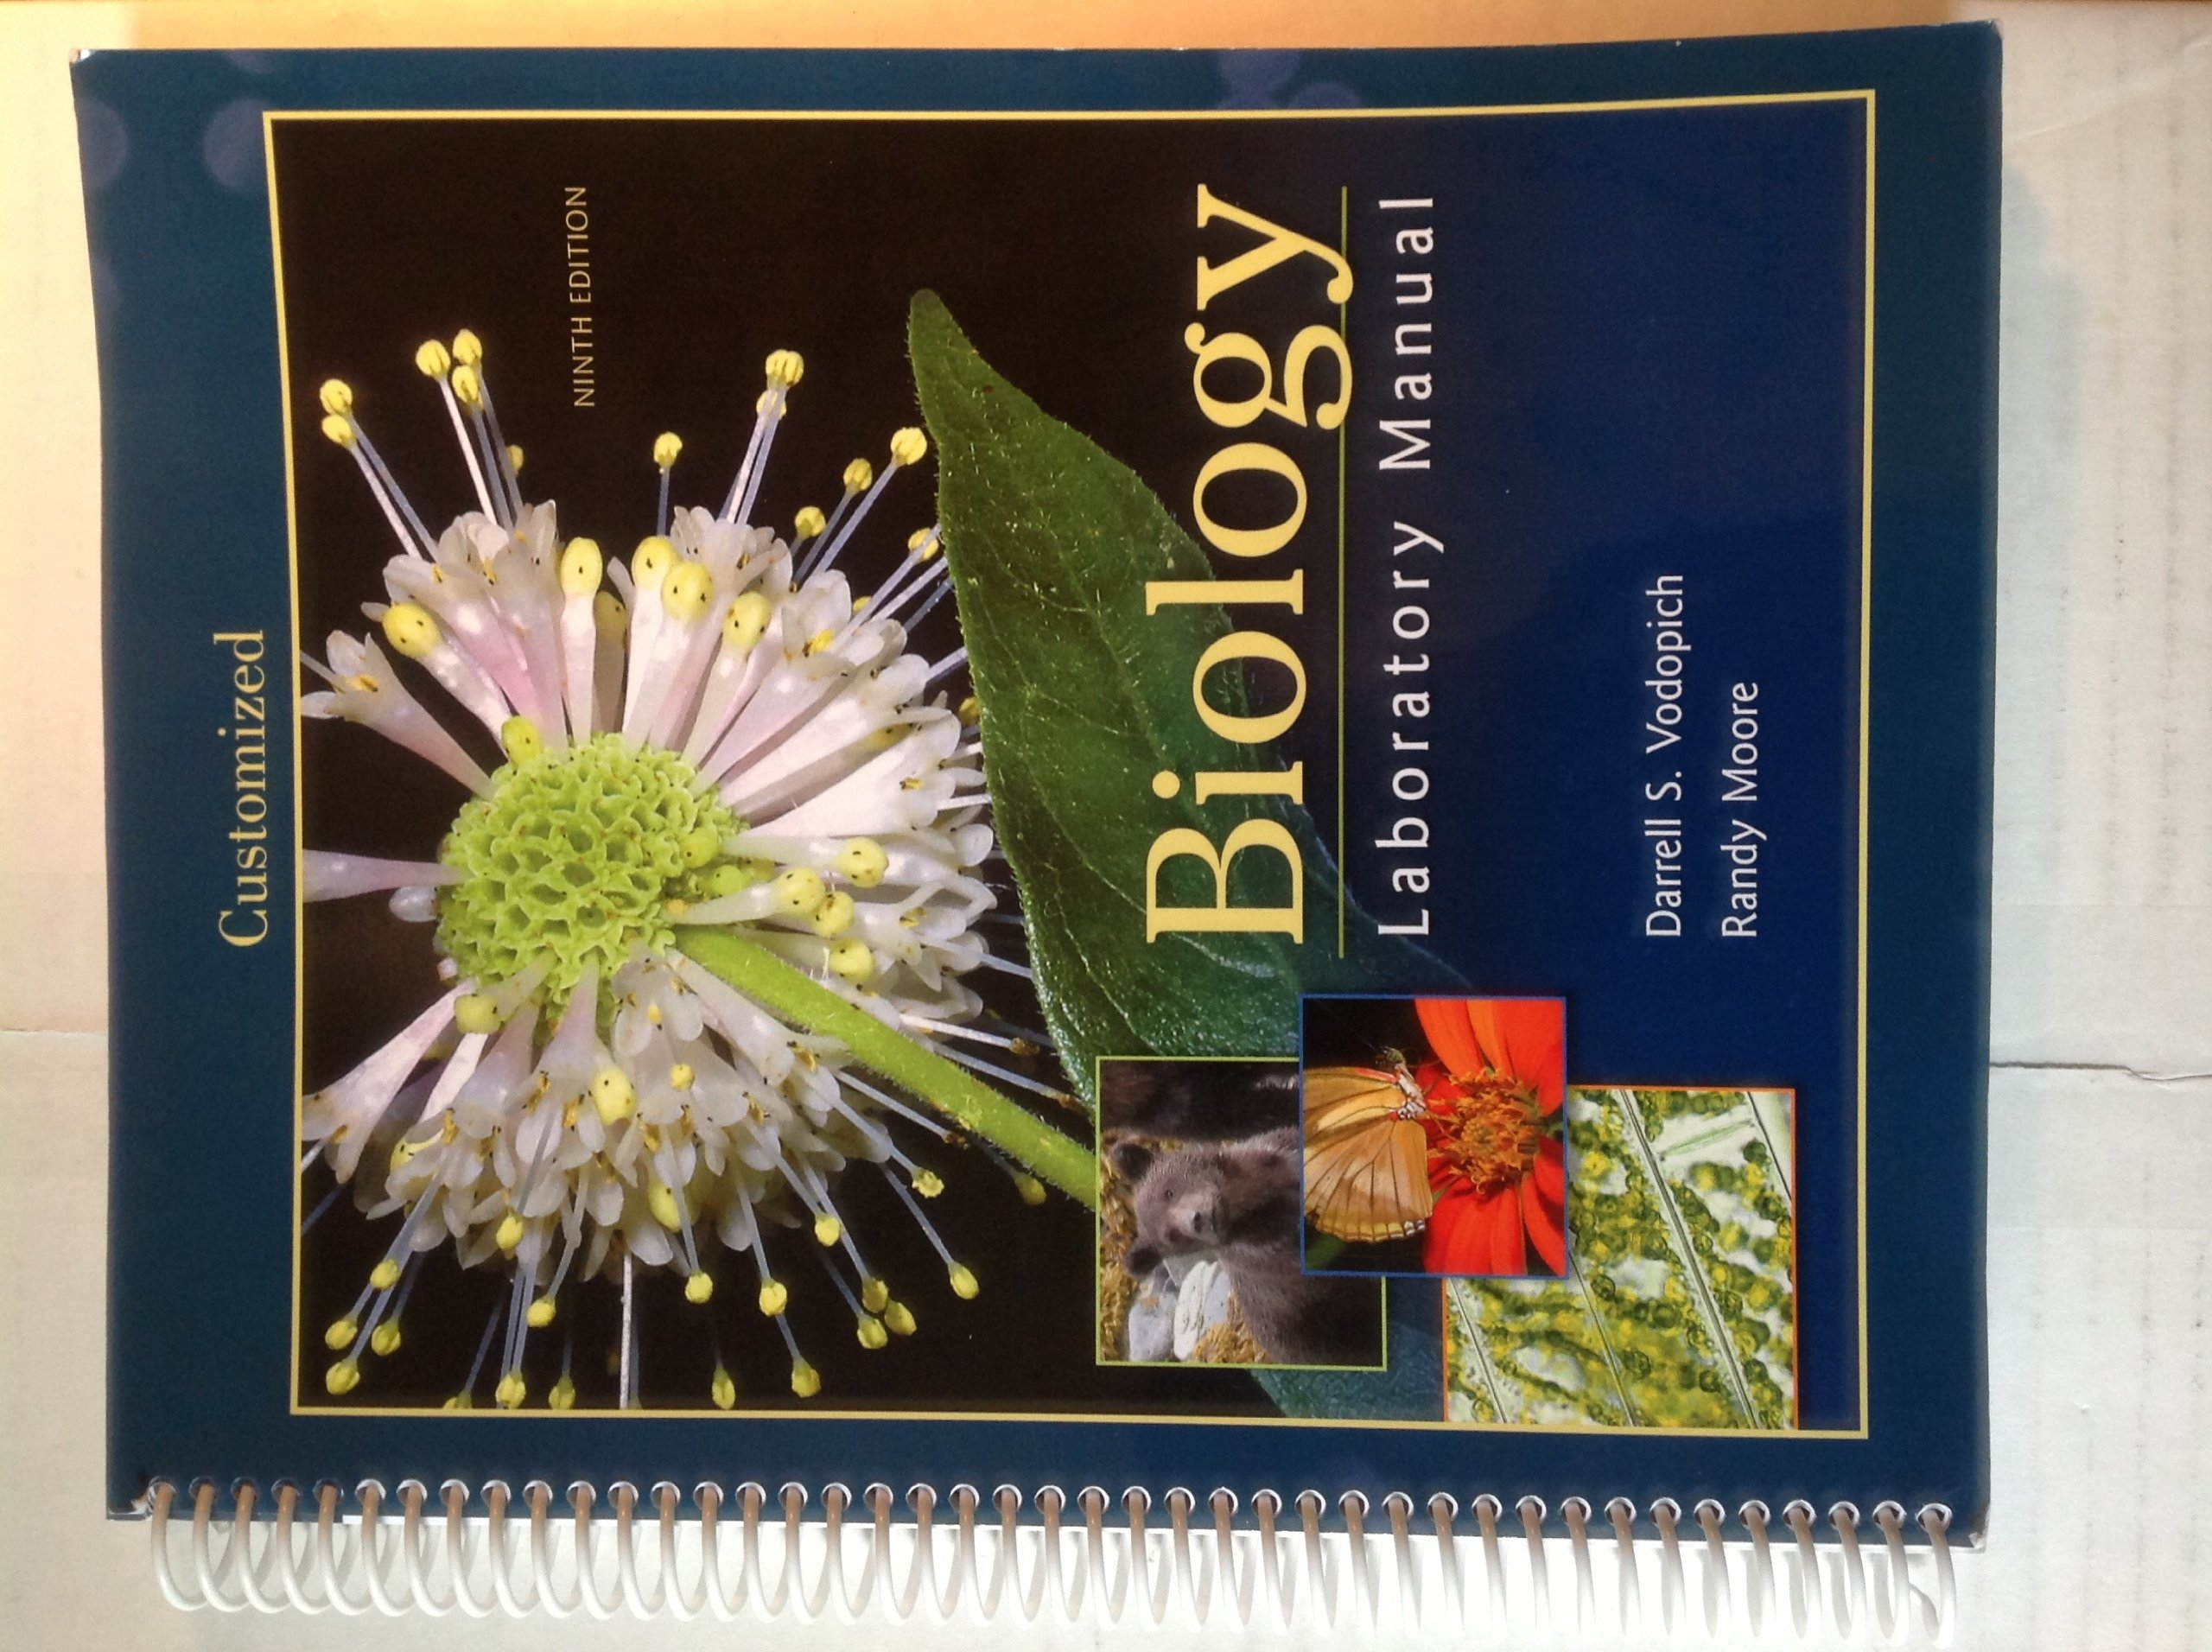 biology laboratory manual darrell s vodopich randy moore rh amazon com vodopich and moore lab manual pdf 9th edition Duke Lab Manual